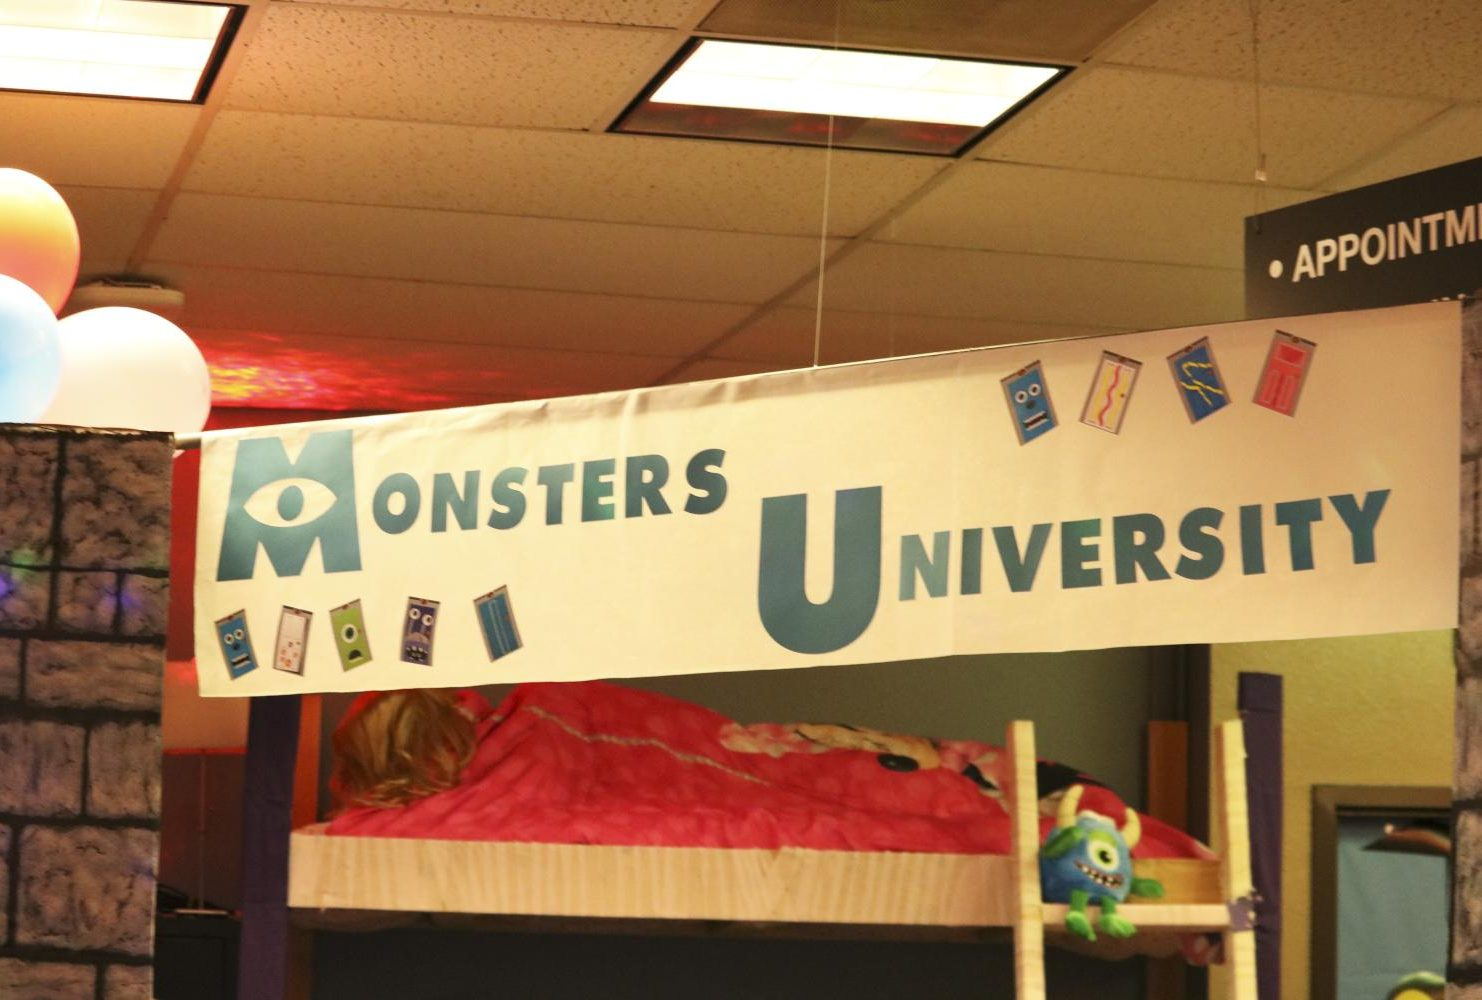 The Counselor's office is decorated as Monsters Inc. with photos of the main characters of the films on the wall, and doors hanging from the ceiling similar to the ones in the movie. (Photo by Gabe Carlos)